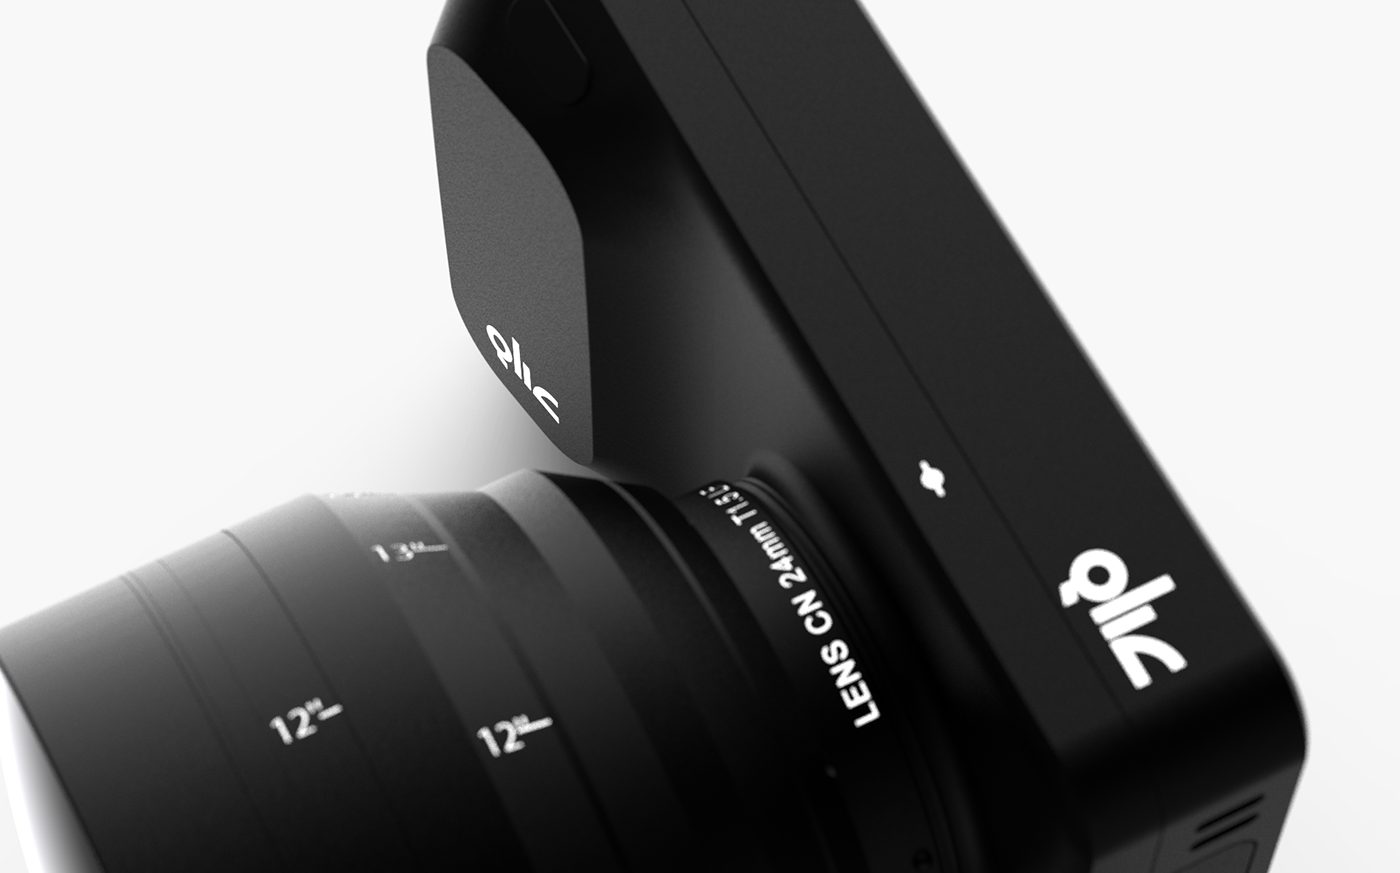 camera concept design Film   Gear industriel lens Photography  product rendering